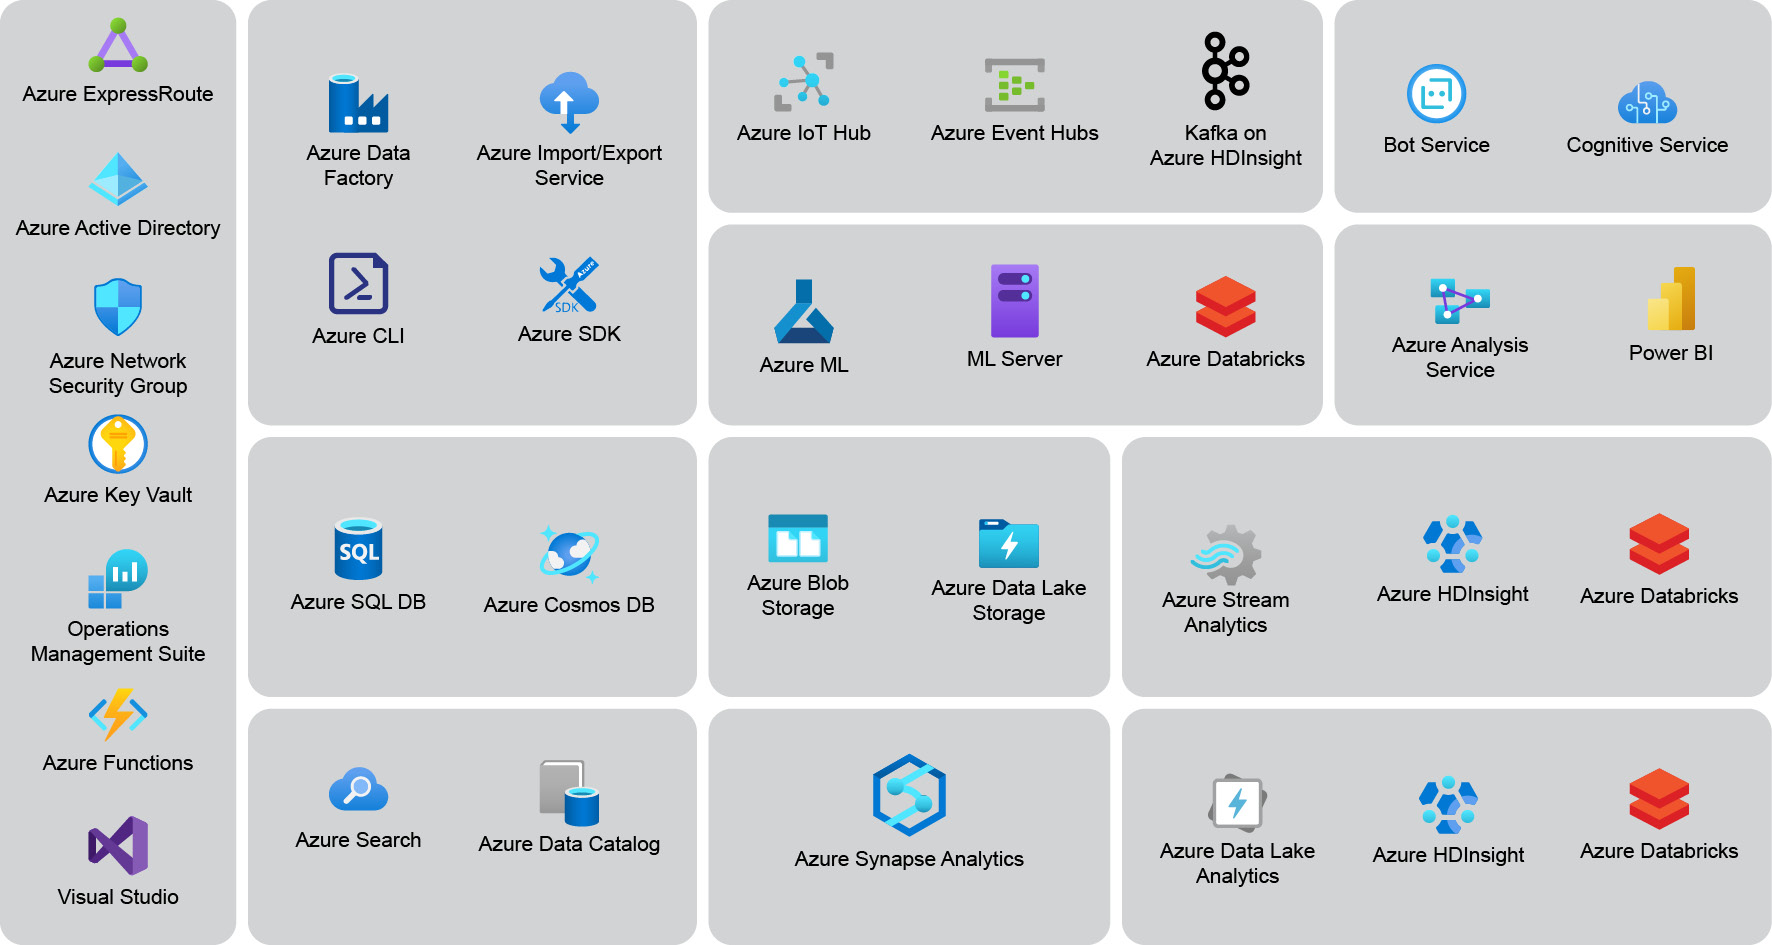 Microsoft Azure data-related services